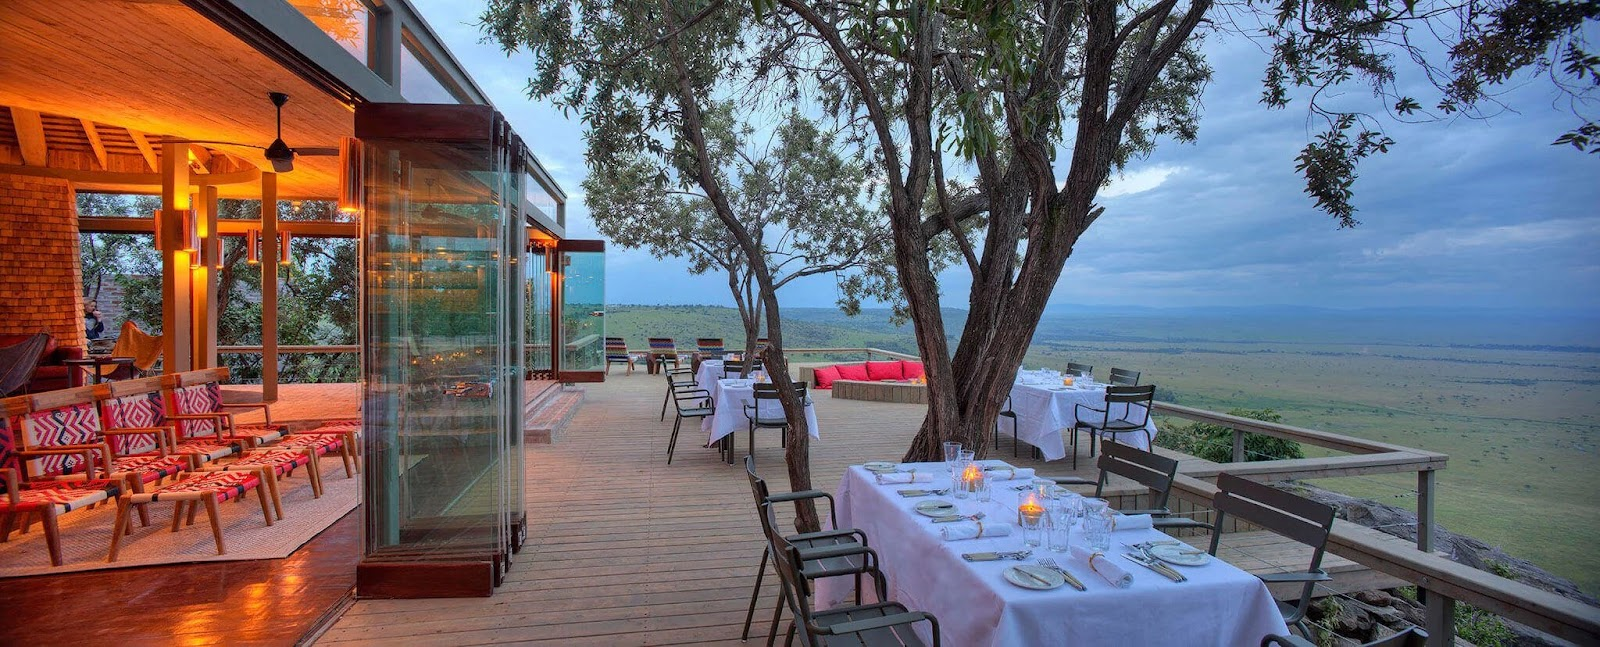 Angama Mara is the perfect honeymoon destination in Kenya